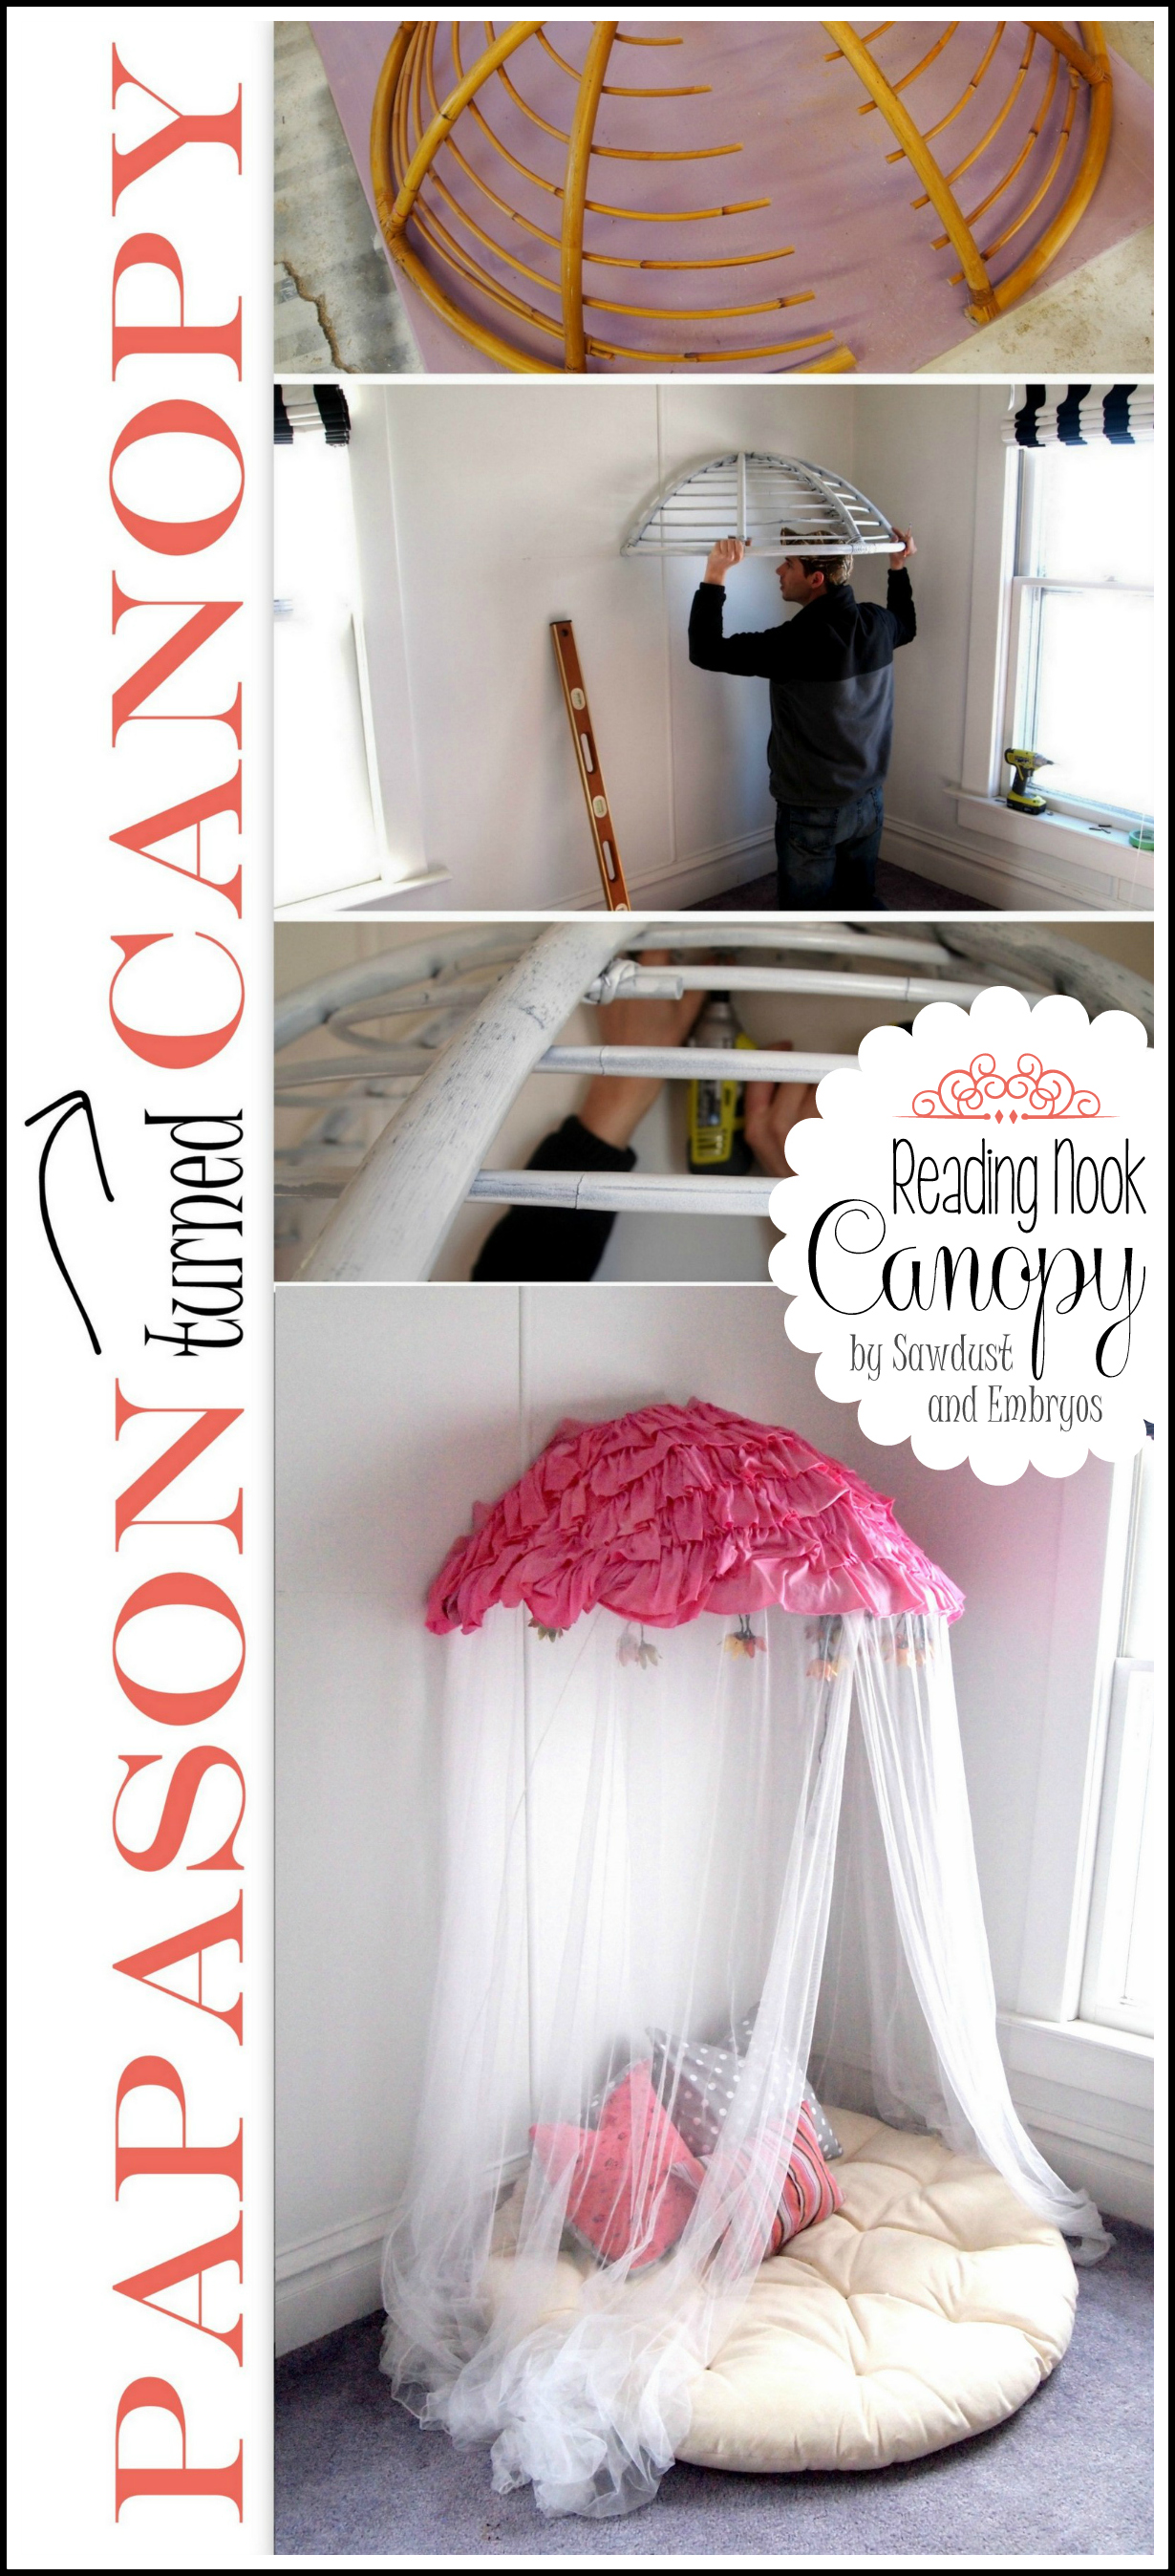 Turn an old papasan chair in to a Canopy Reading Nook for the littles!